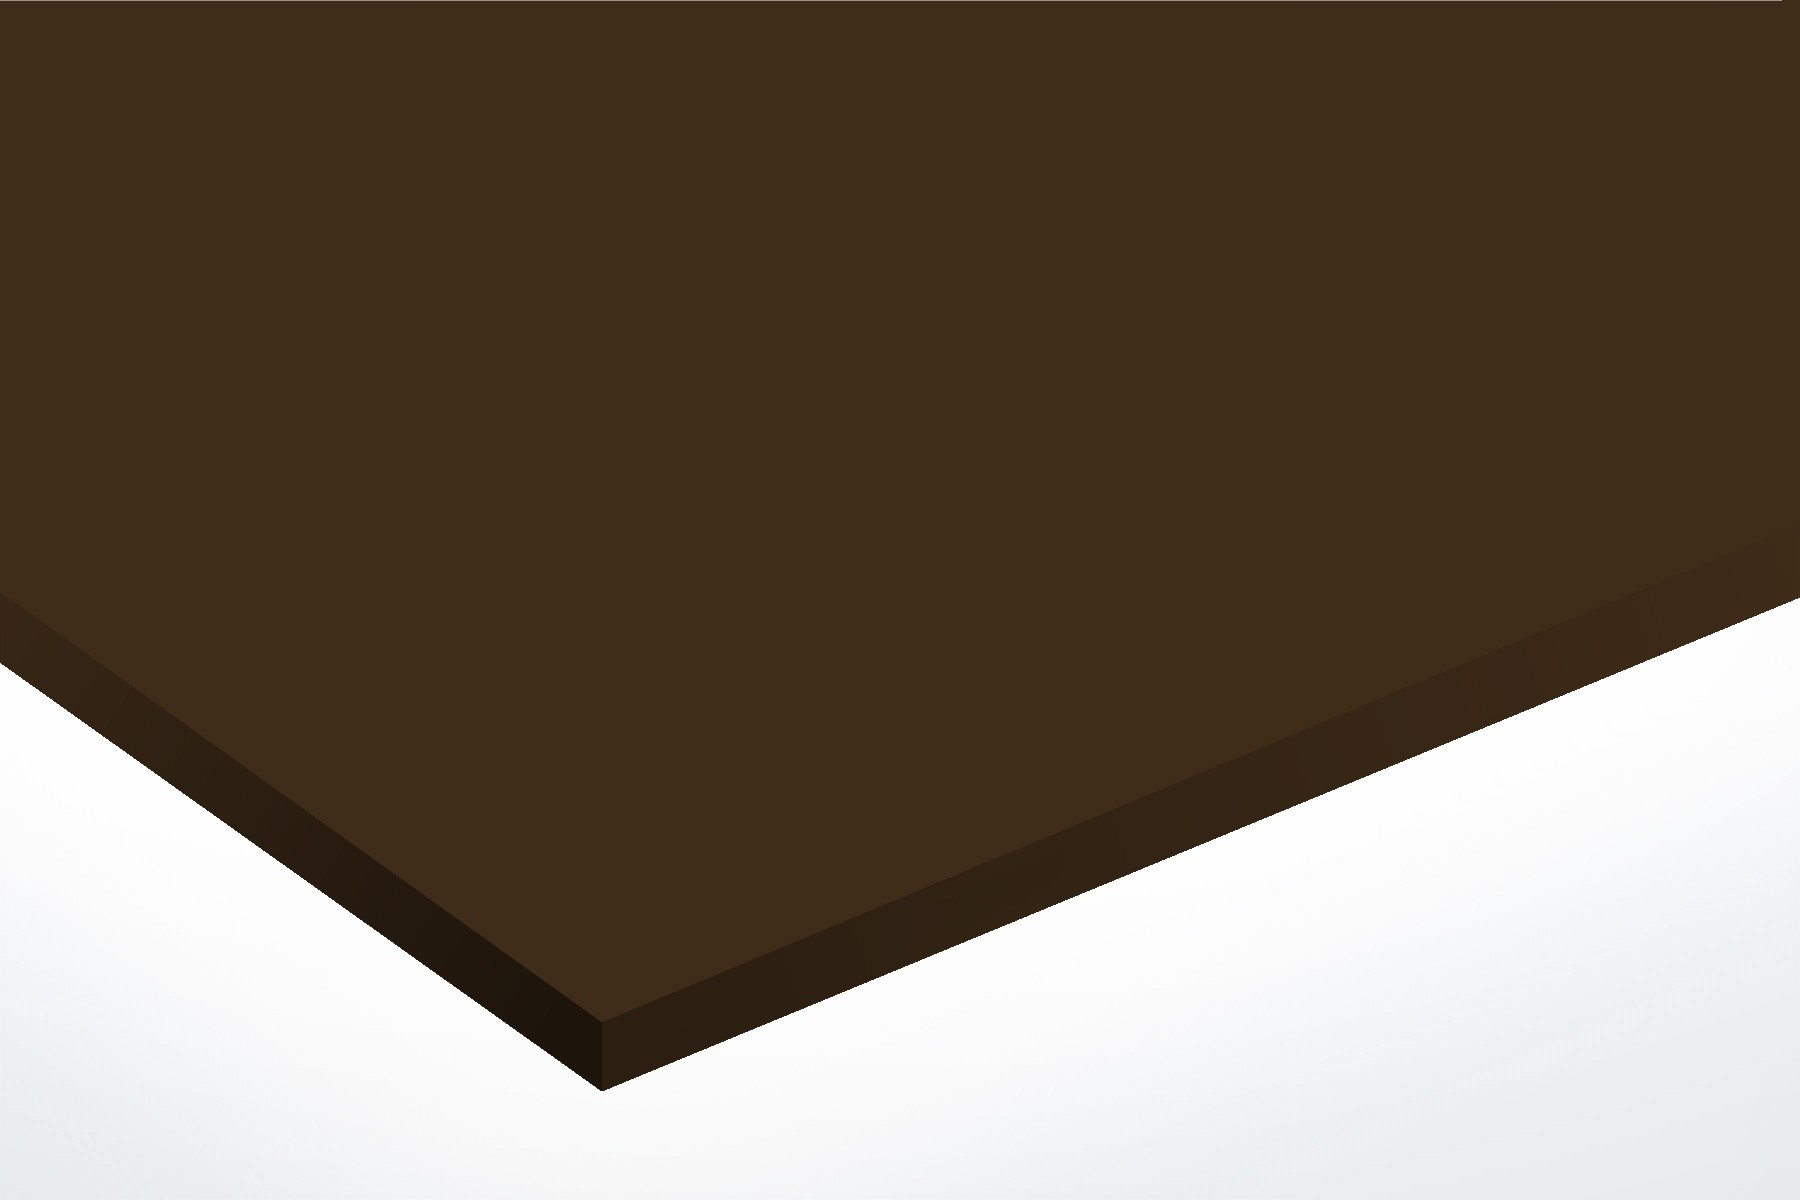 Anodised Aluminium Dark Bronze,  Matte, 3mm x 1000mm x 500mm